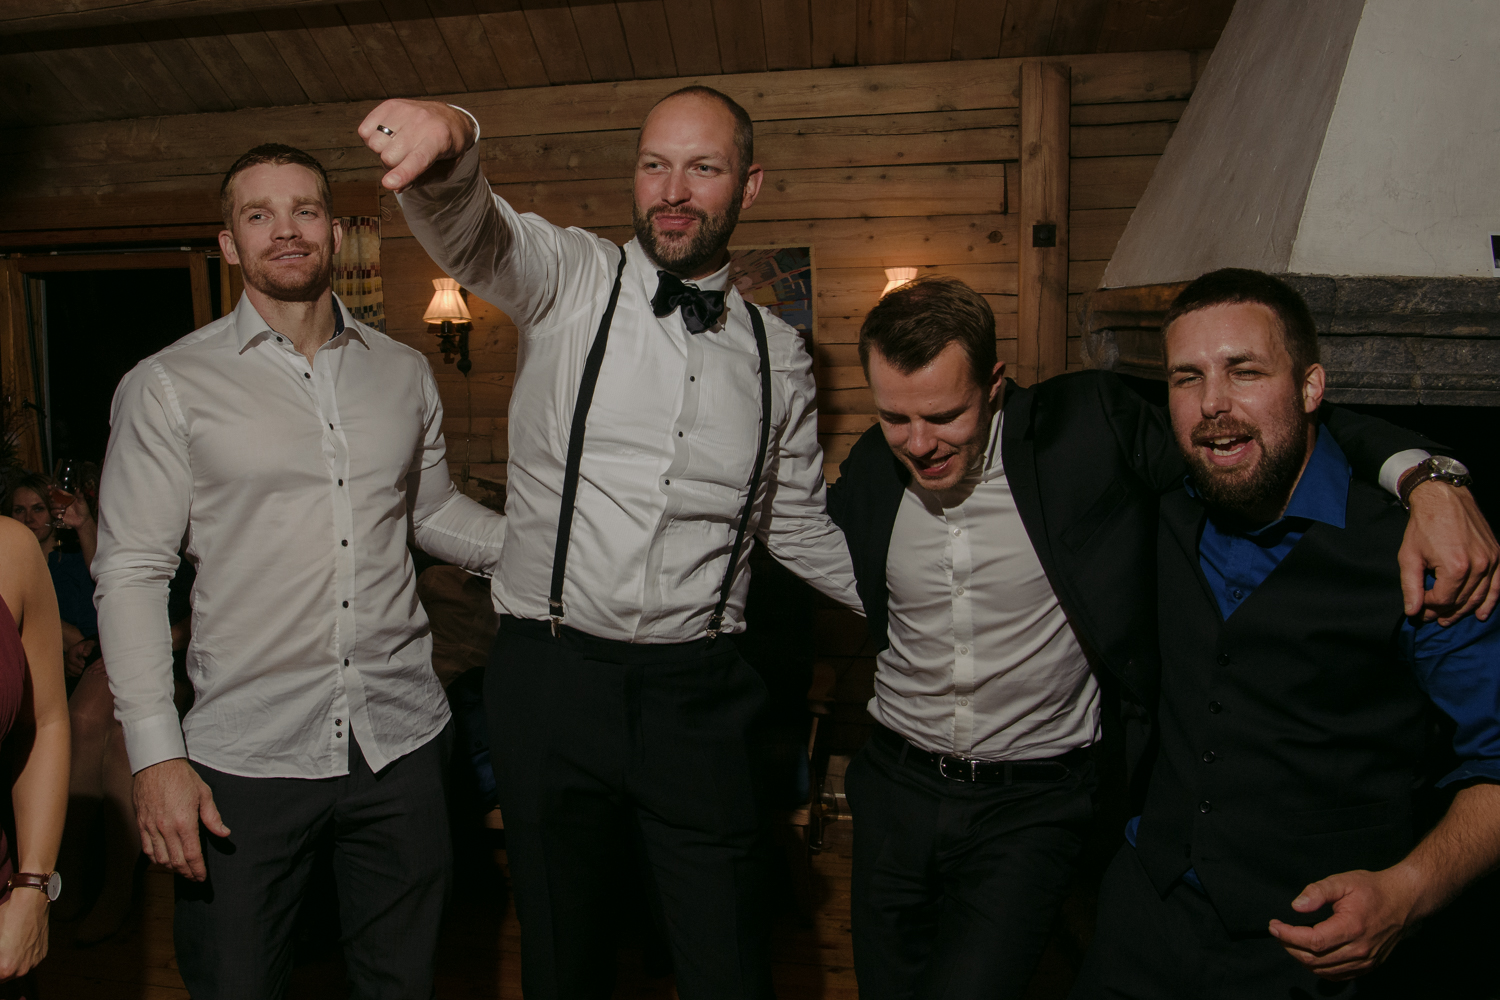 Norwegian Wedding groom with friends